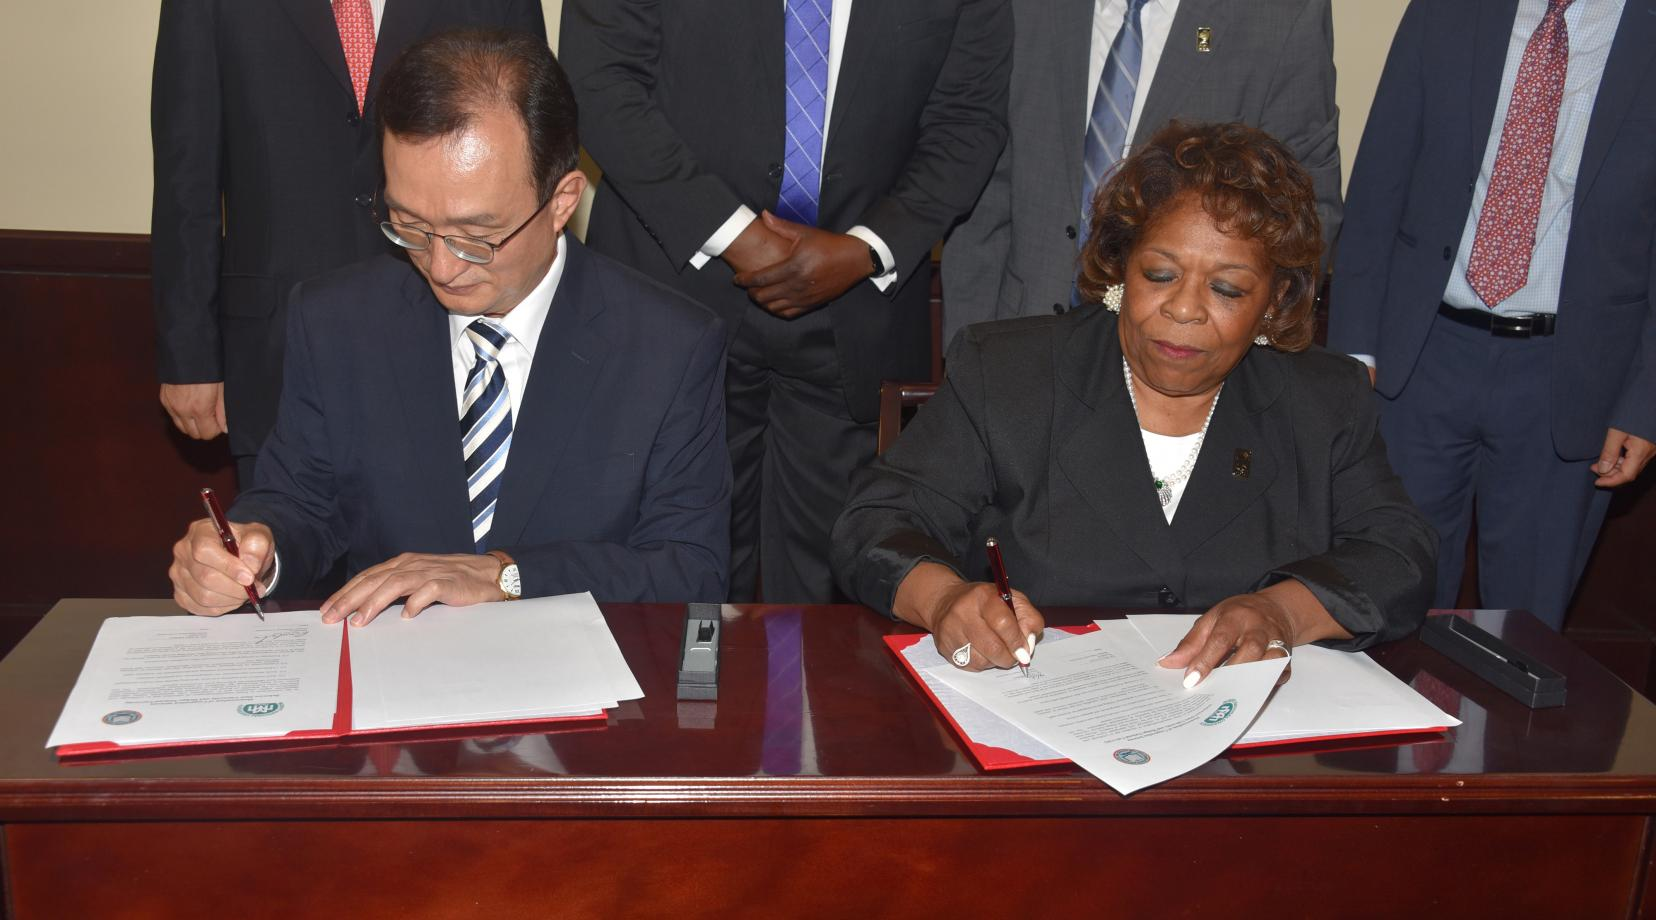 (L-r) Mokpo National University President Min-Seo Park and Delaware State University President Wilma Mishoe sign an agreement that will make possible study abroad and collaboration opportunities.